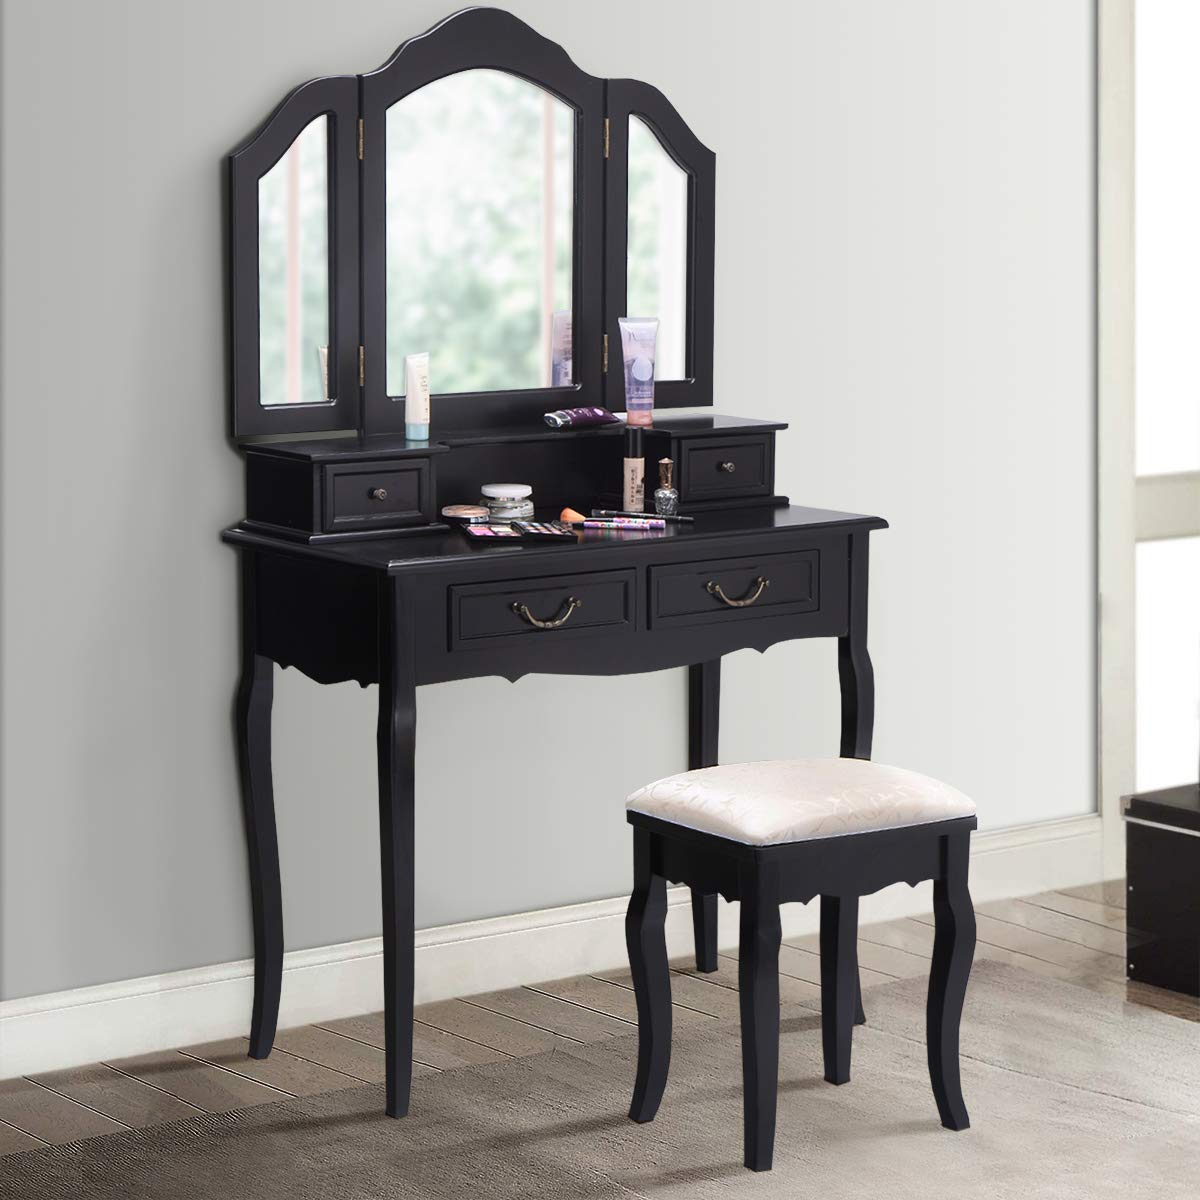 Amazon.com: Giantex Bathroom Vanity Set Dressing Table with Stool ...